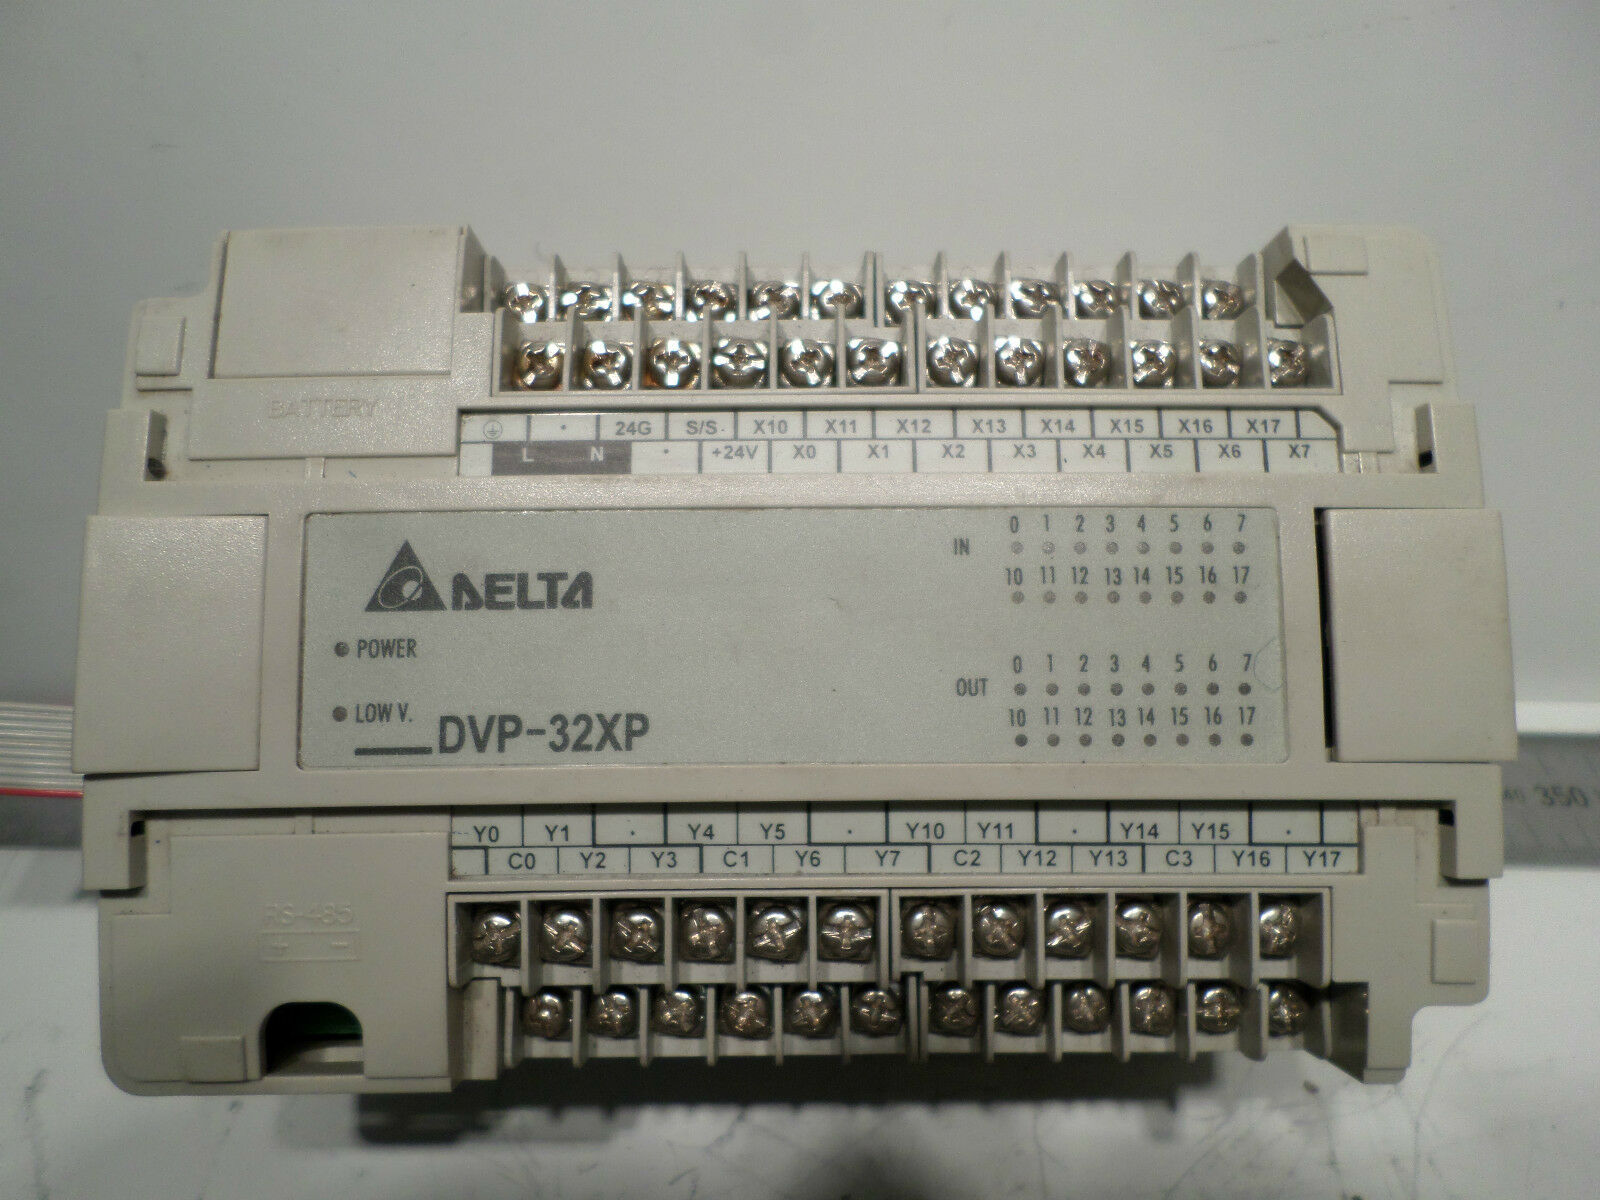 DELTA PLC EXPANSION - DVP-32XP -- 16 Inputs 16 Outputs - 100-240 Supply - Tested